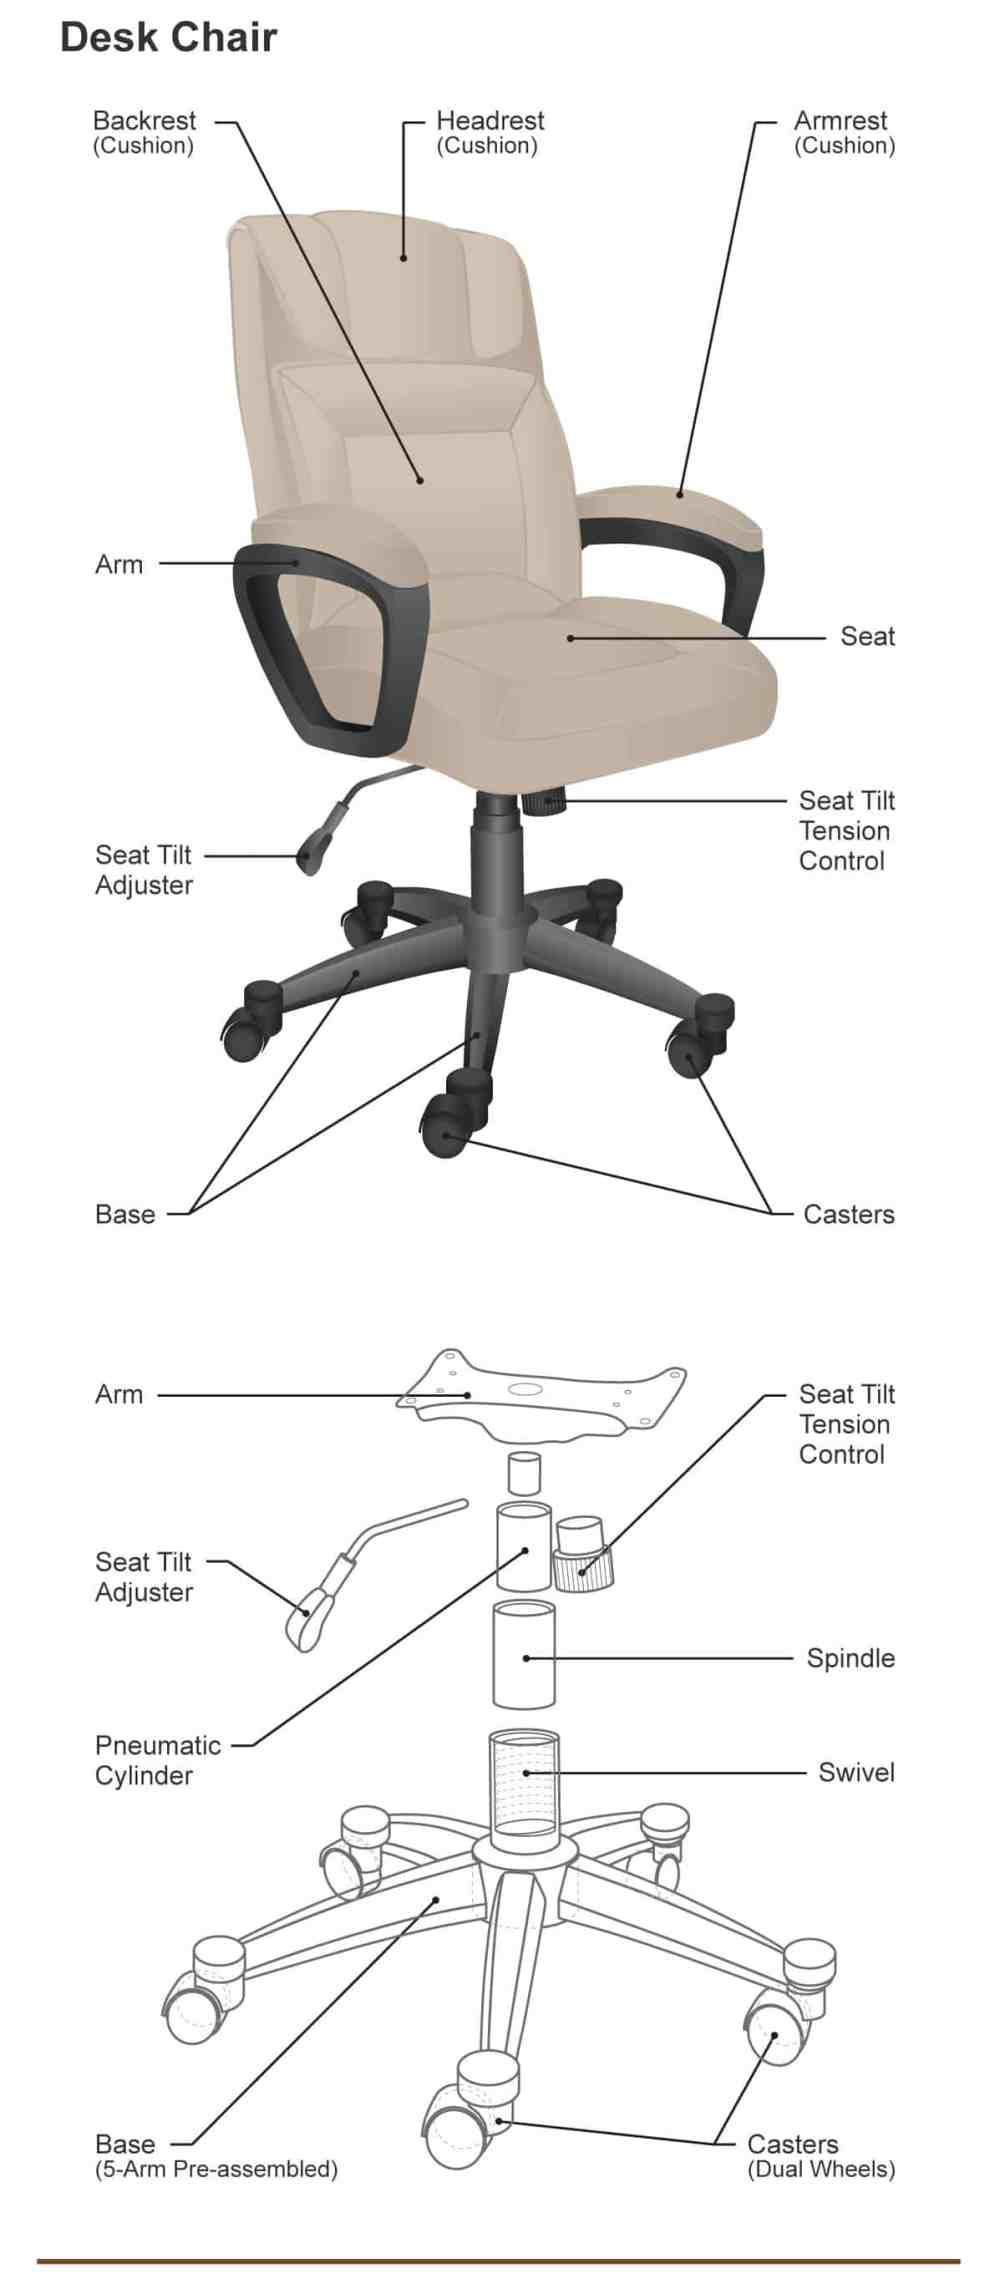 medium resolution of diagram illustrating the different parts of a desk chair